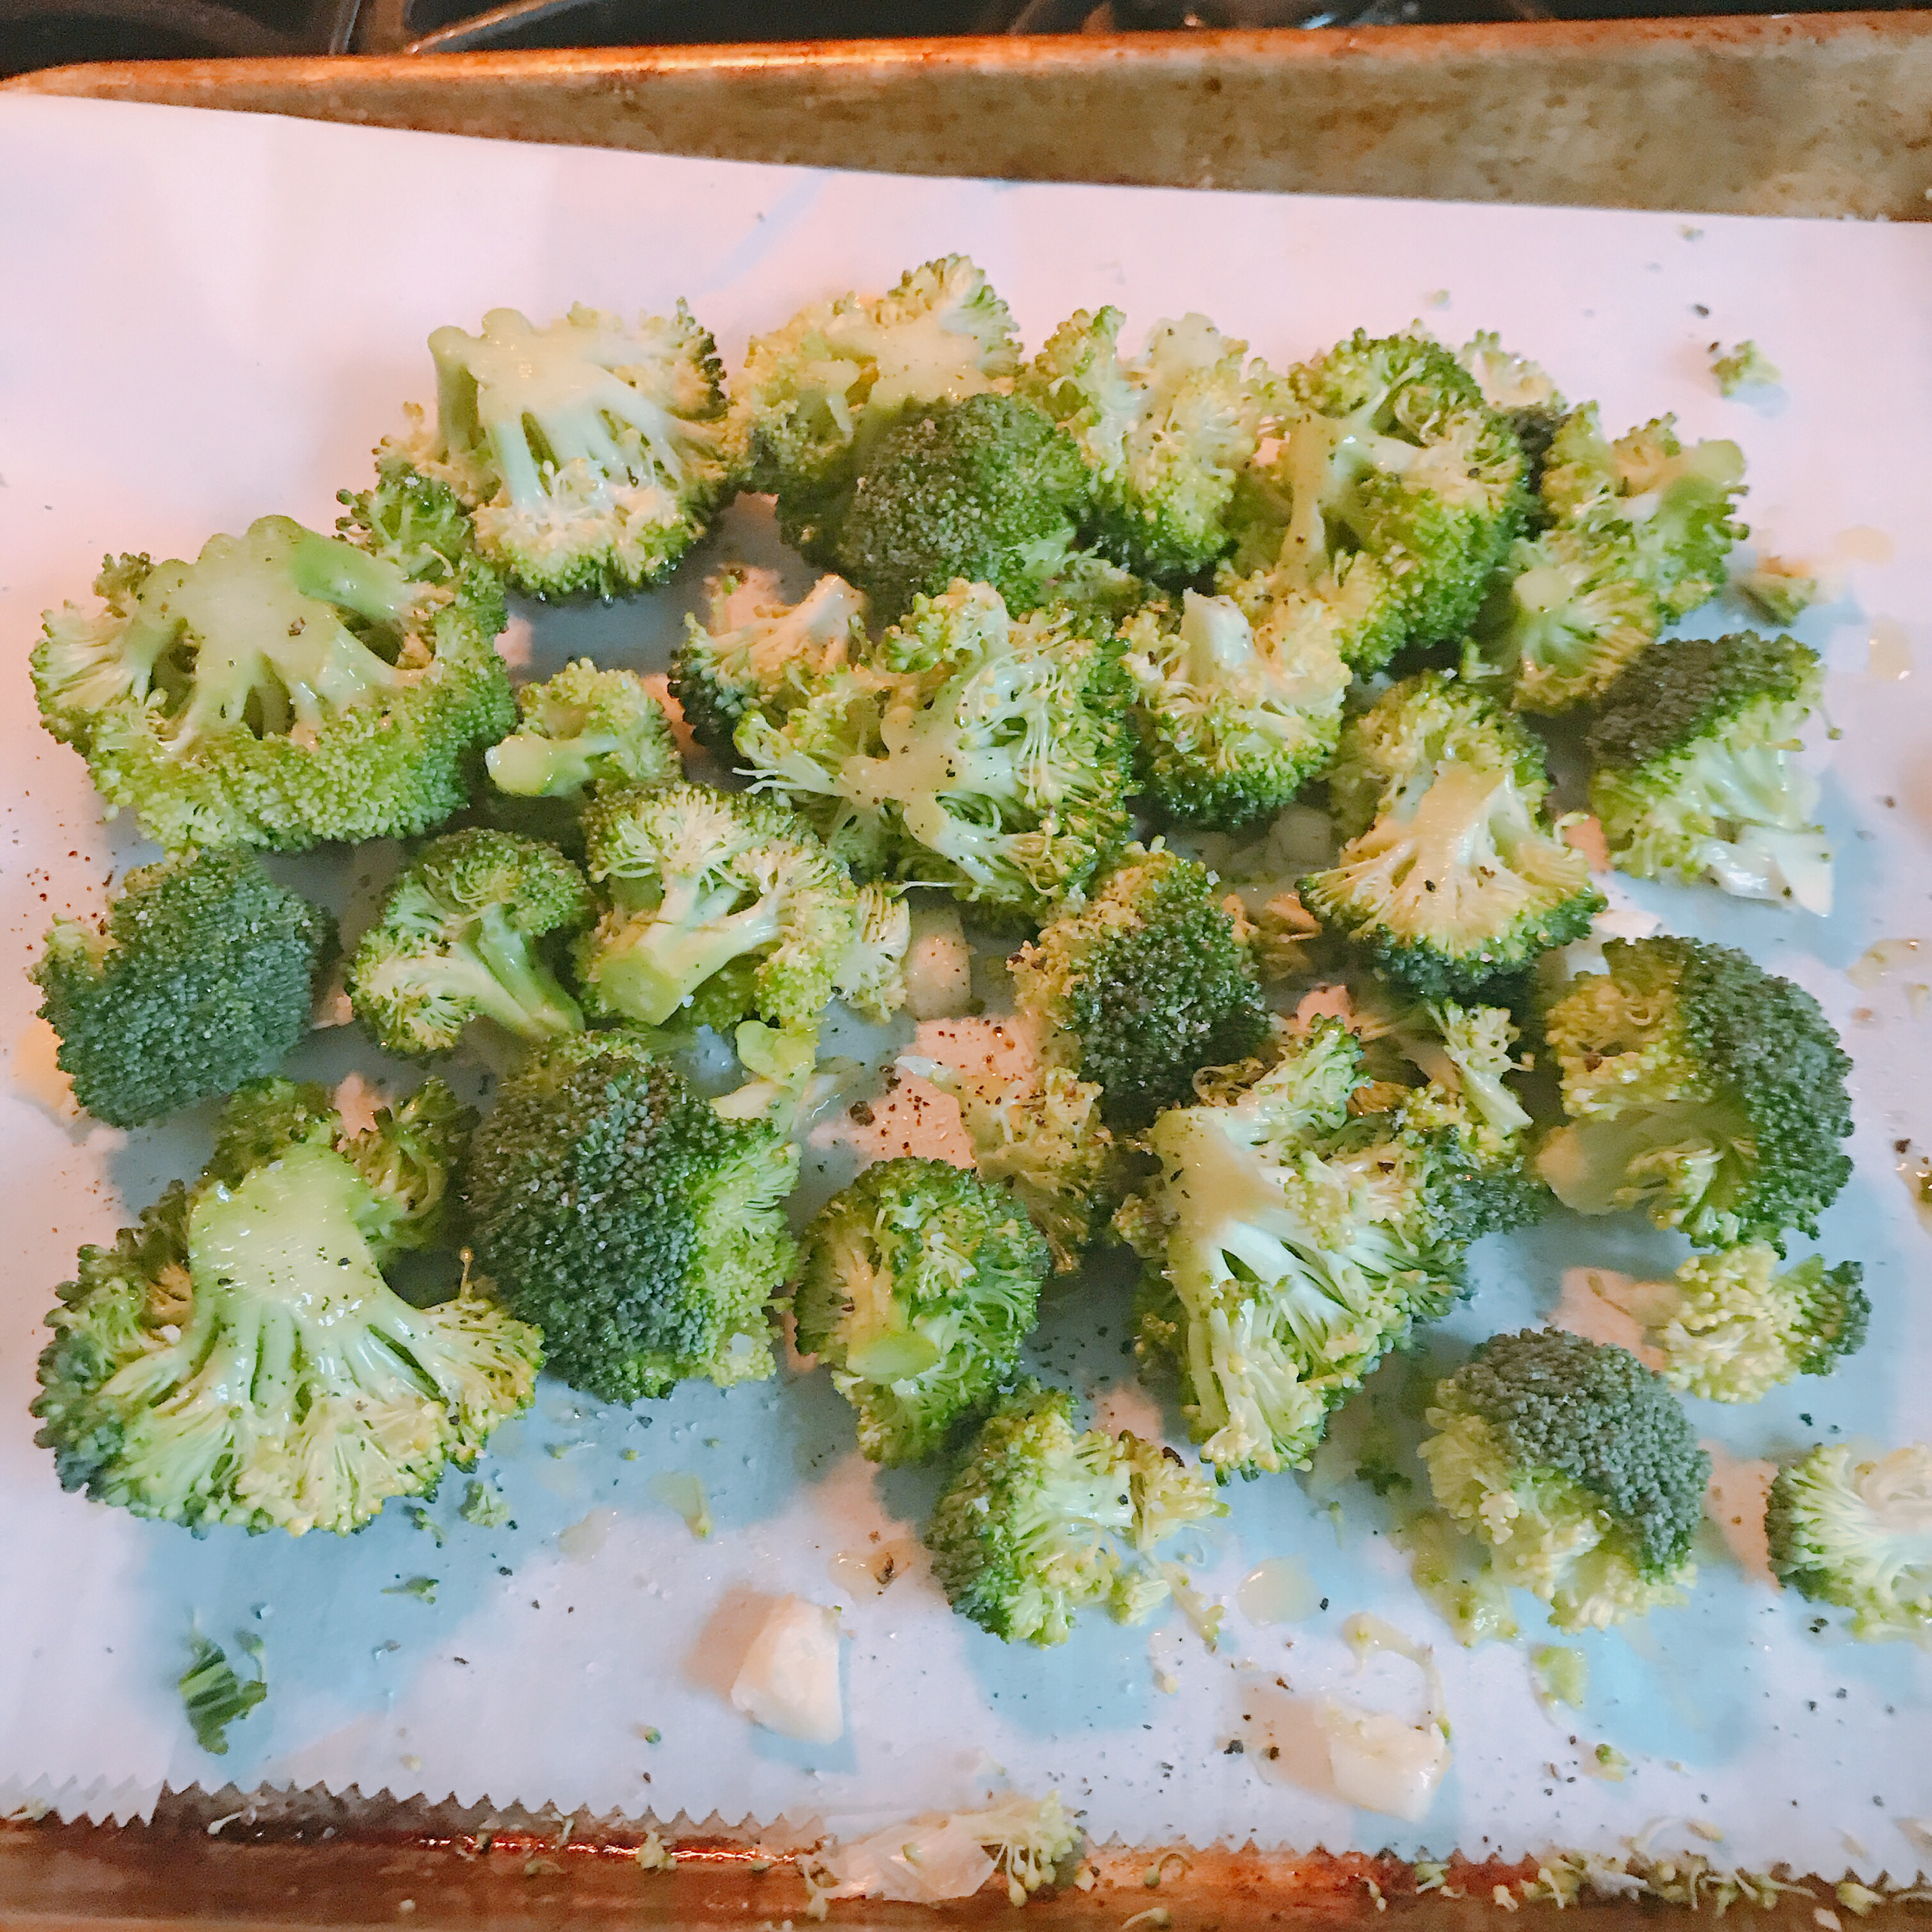 Broccoli ready to roast